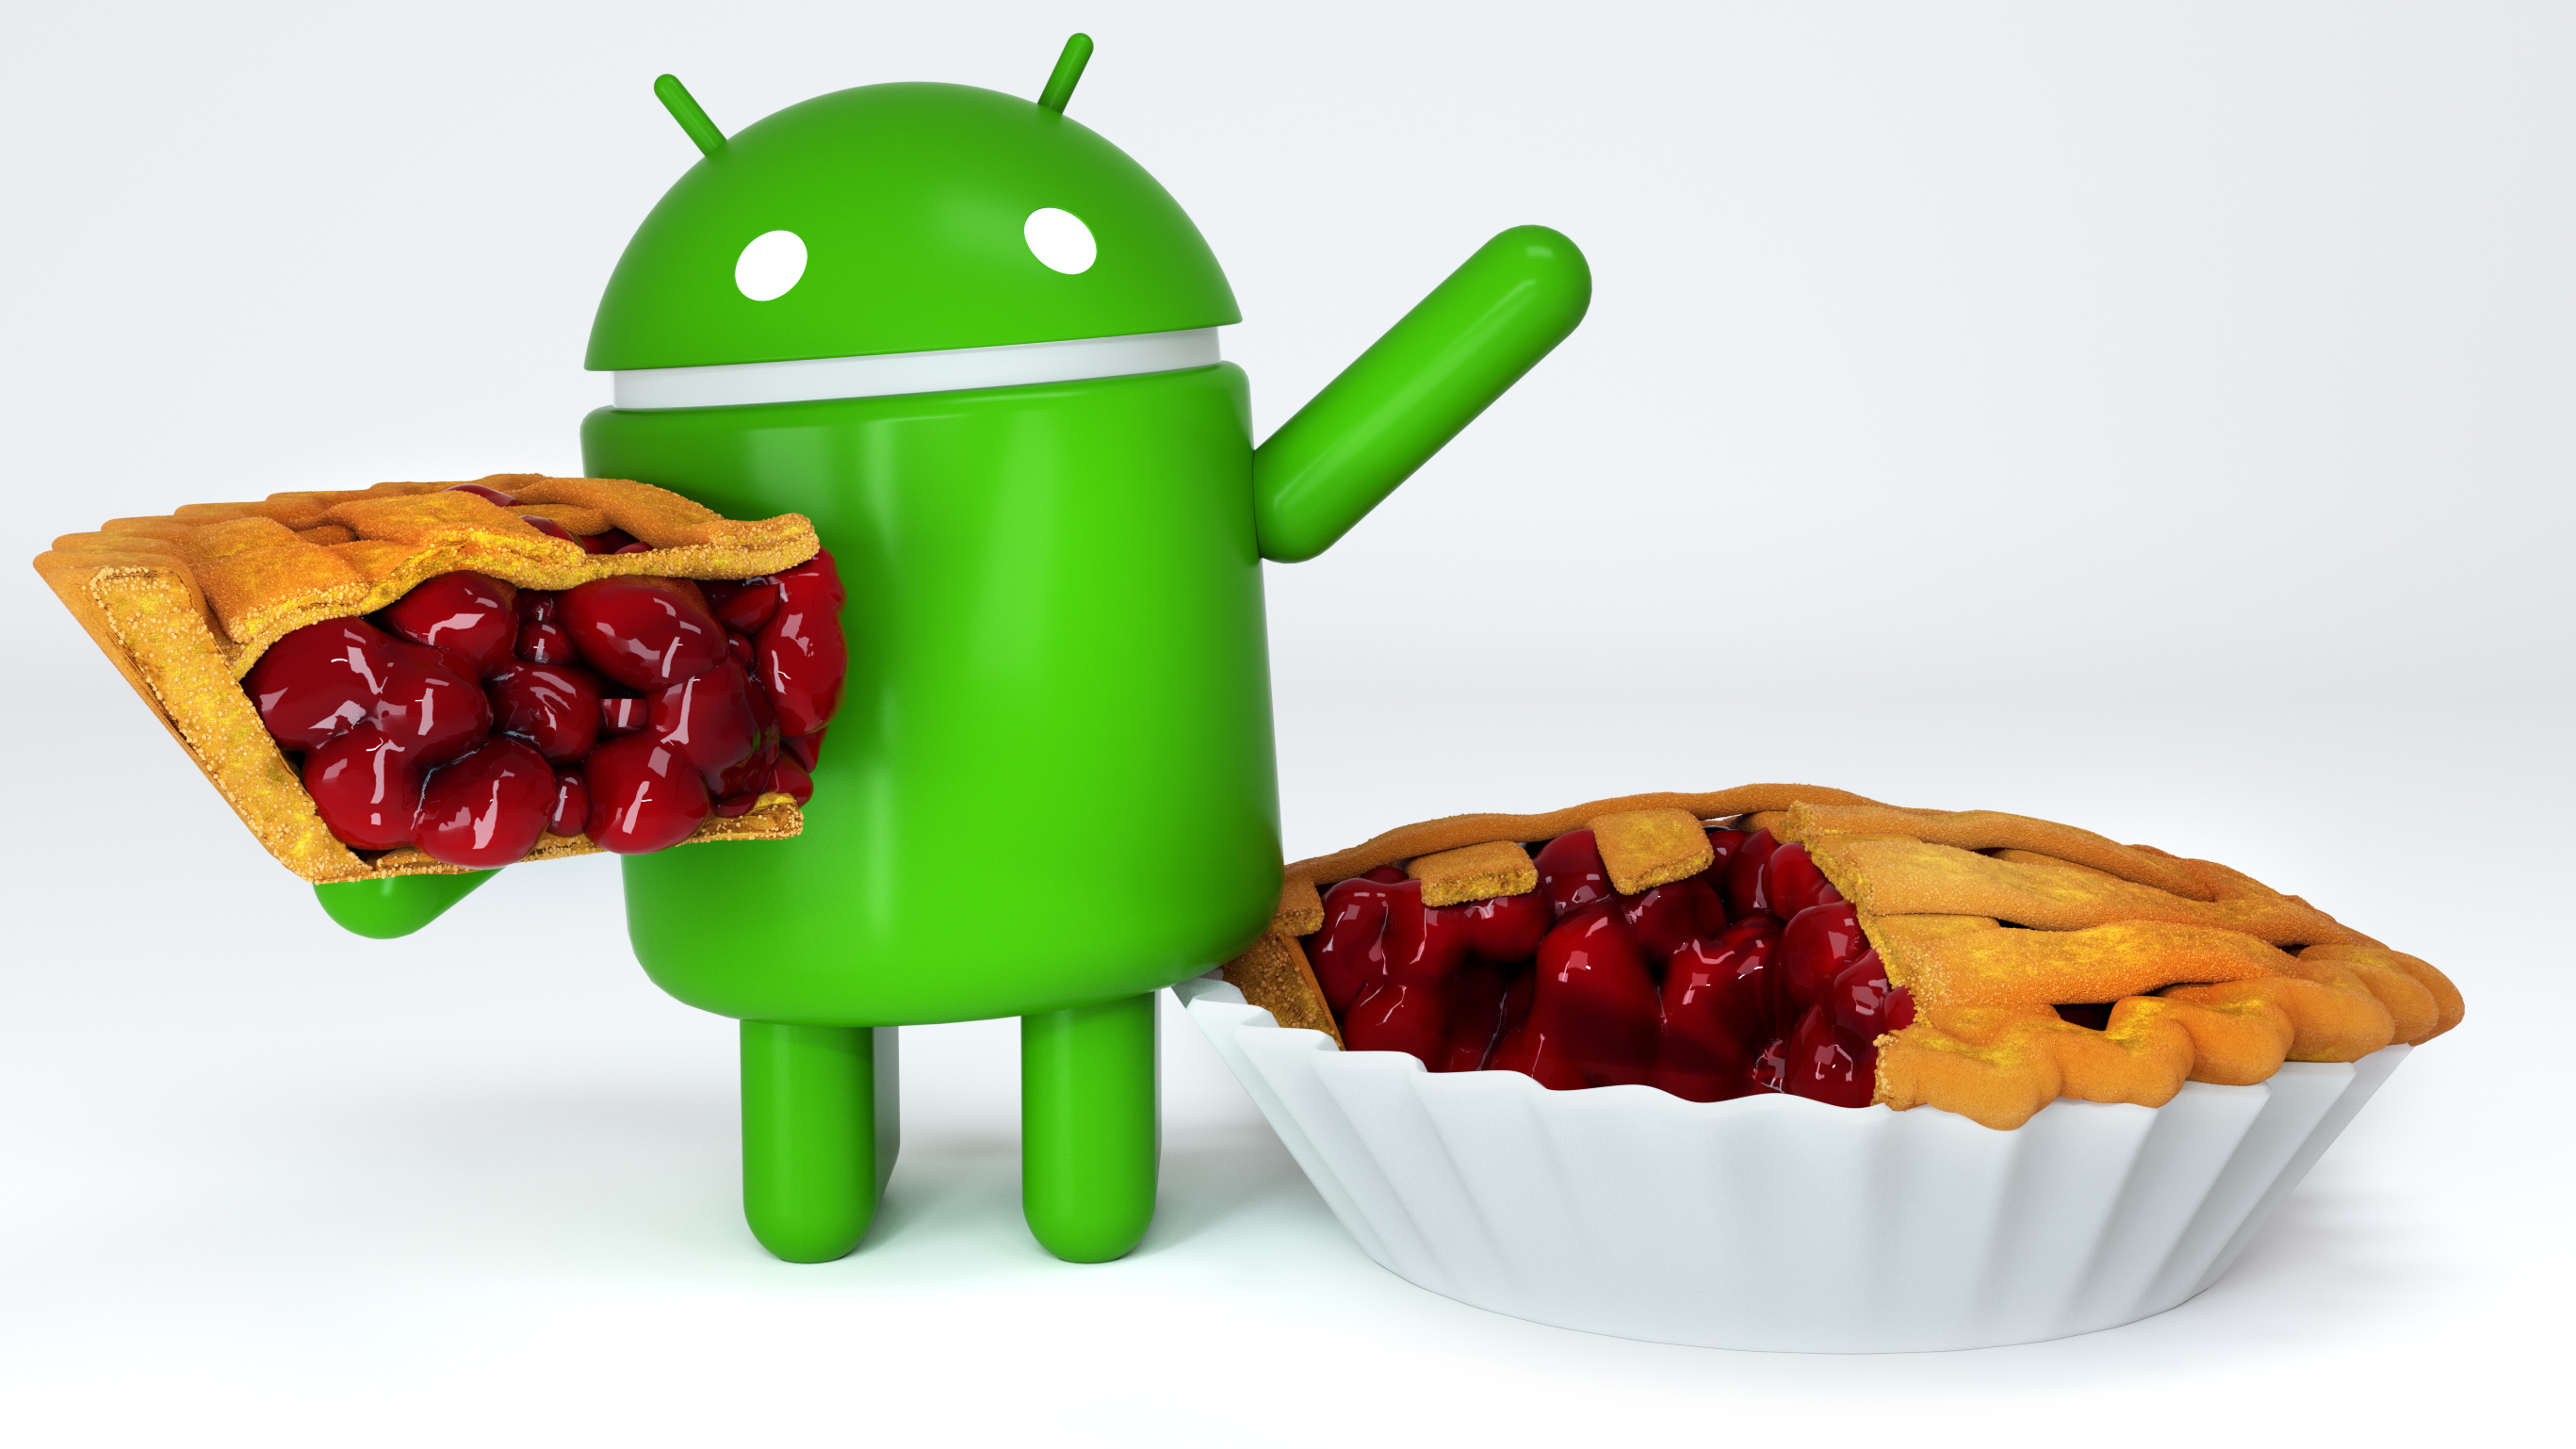 Android Pie update, features, release date and phones list